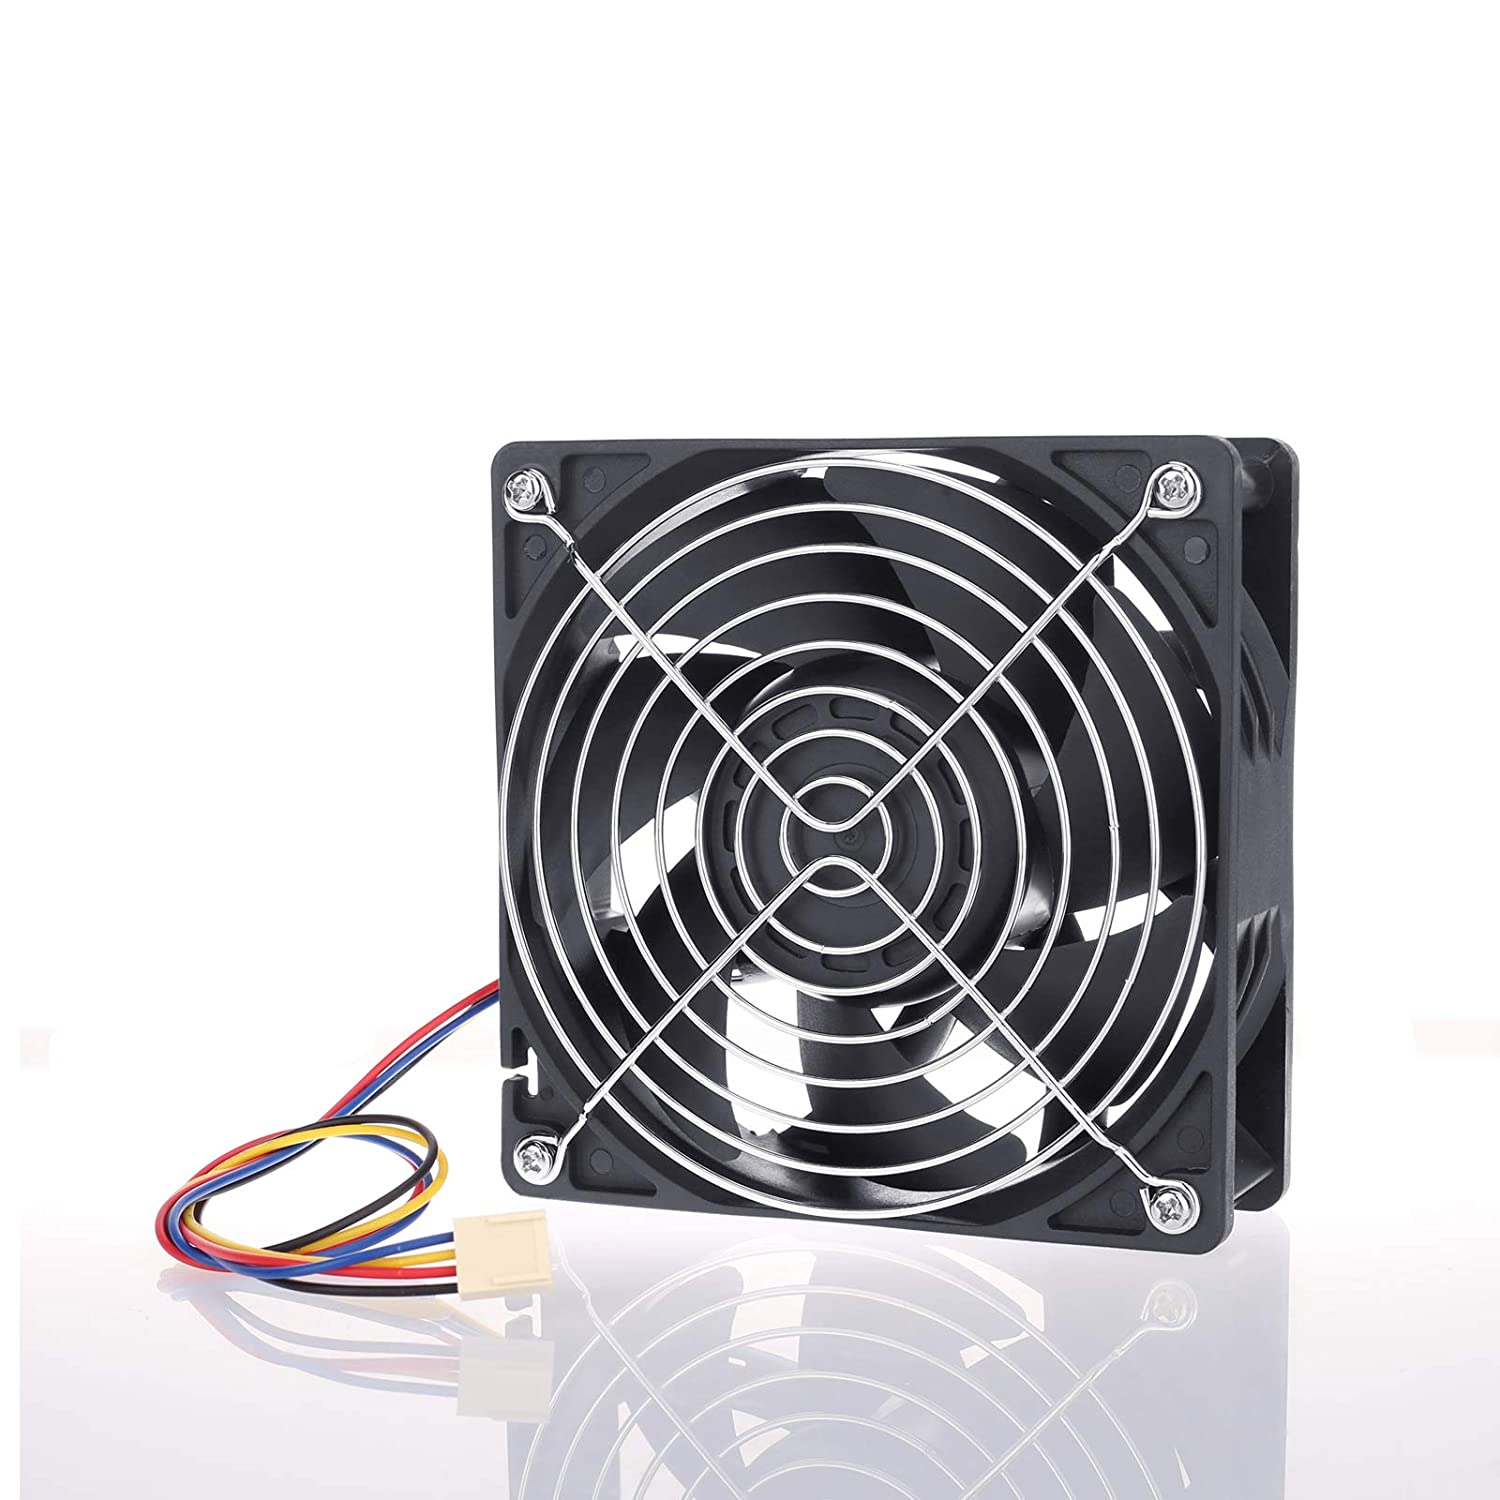 High Speed 120mm x 38mm 12V 210CFM FG PWM Powerful Fan Cooling for Power Mining Workstation Server CPU Cooler